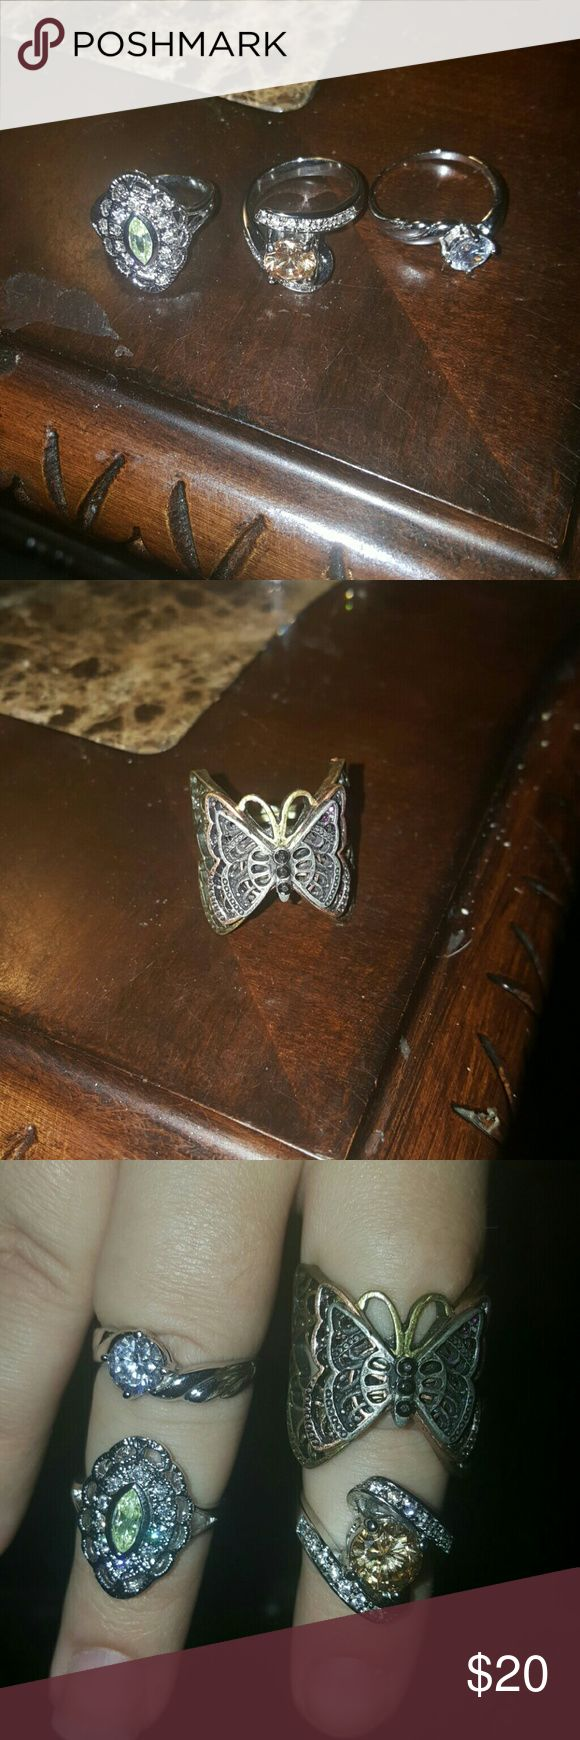 Diamond Candle Rings Sizes unknown. Butterfly has a stretch band and is not a Diamond Candle ring. Never worn Jewelry Rings